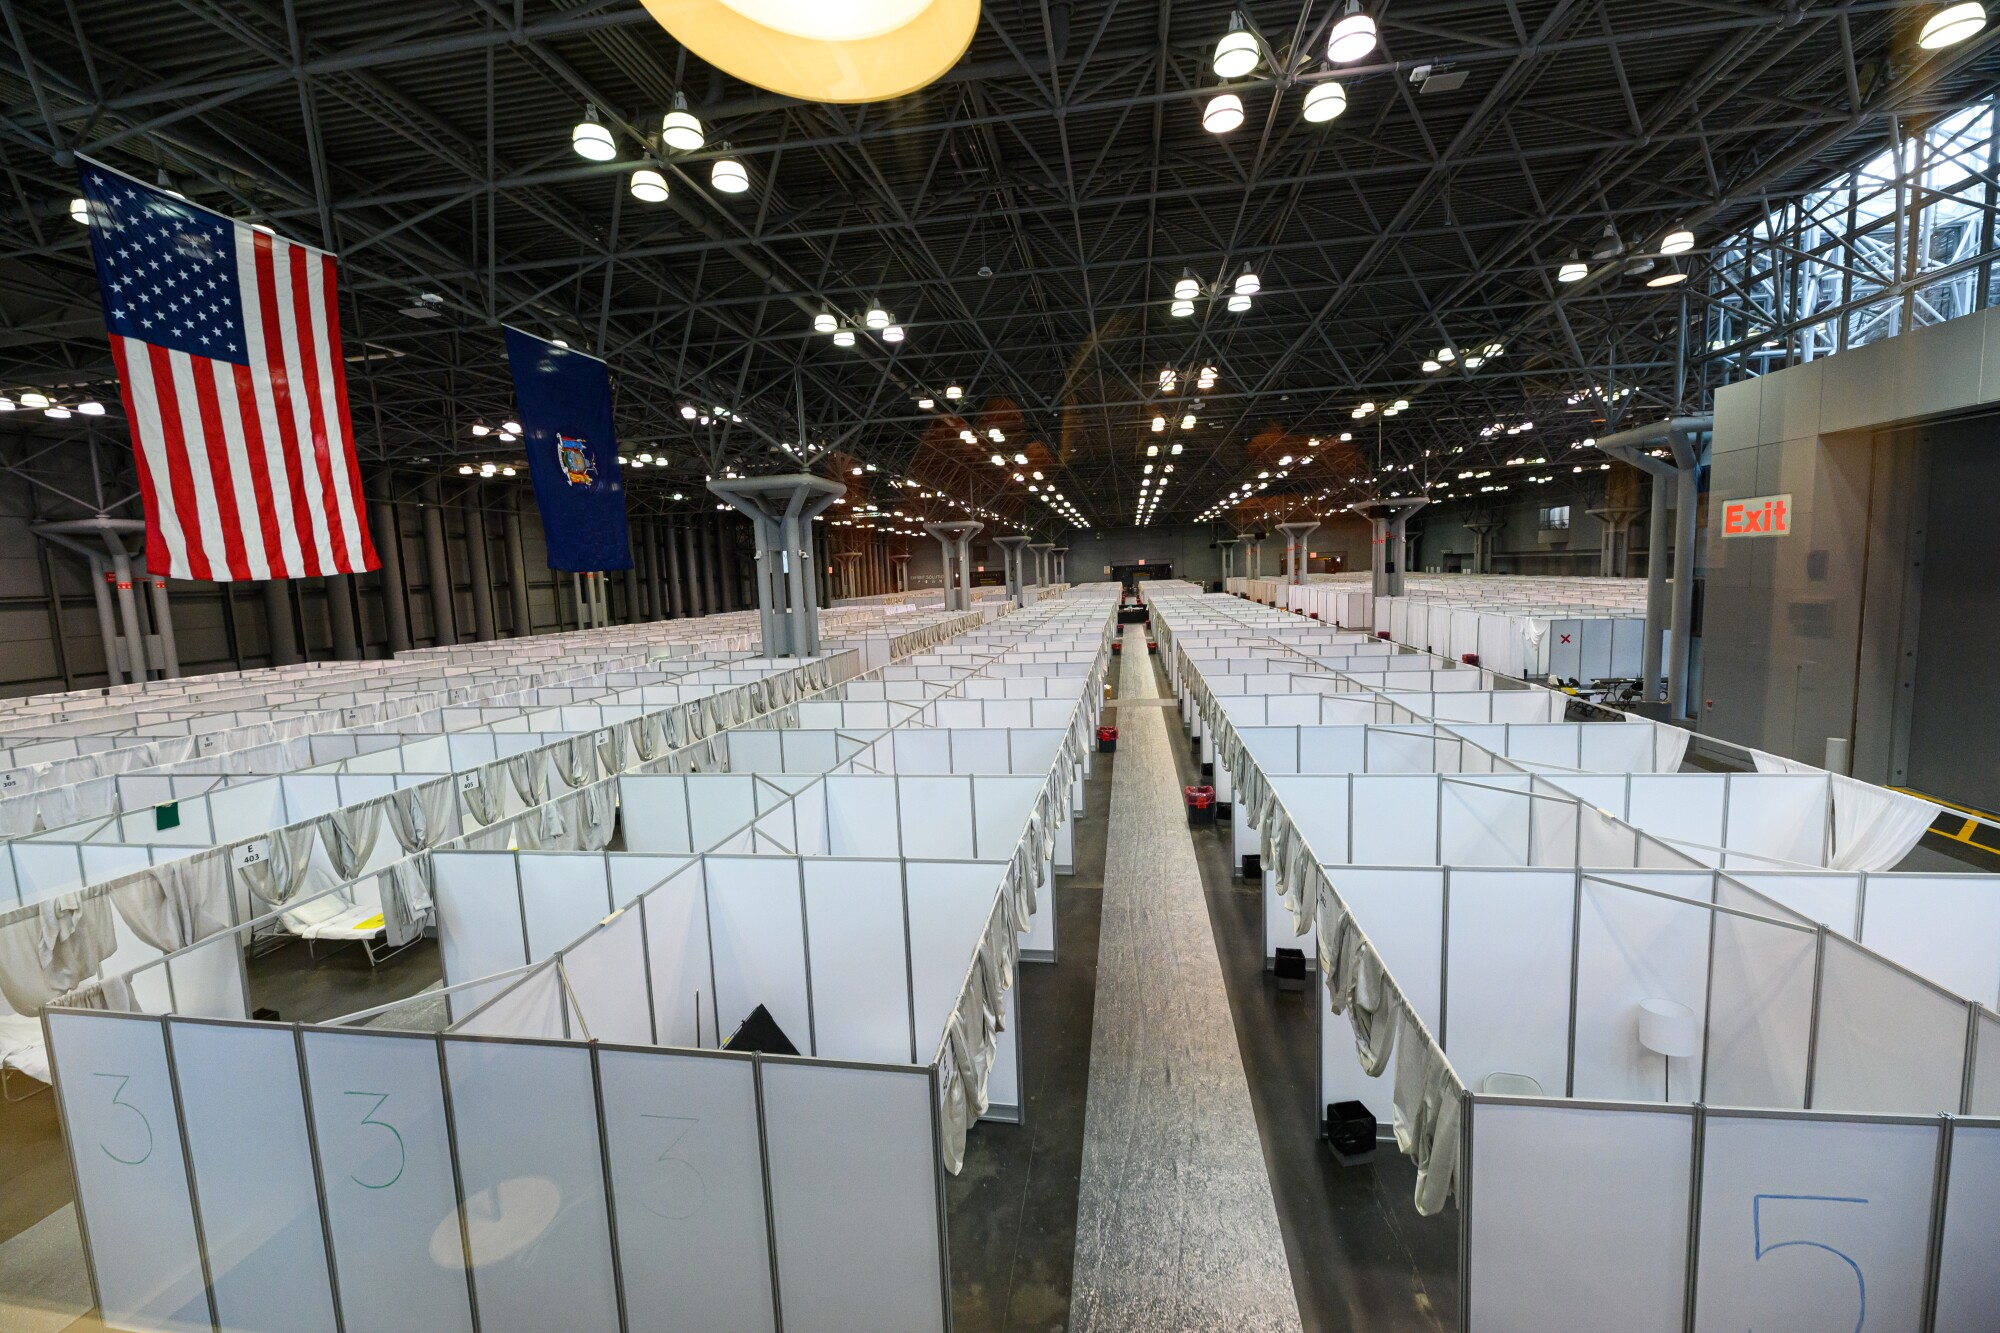 A temporary 3,000-bed hospital has been set up at the Jacob Javits Convention Center in New York City to serve patients who are not being treated for coronavirus infection.